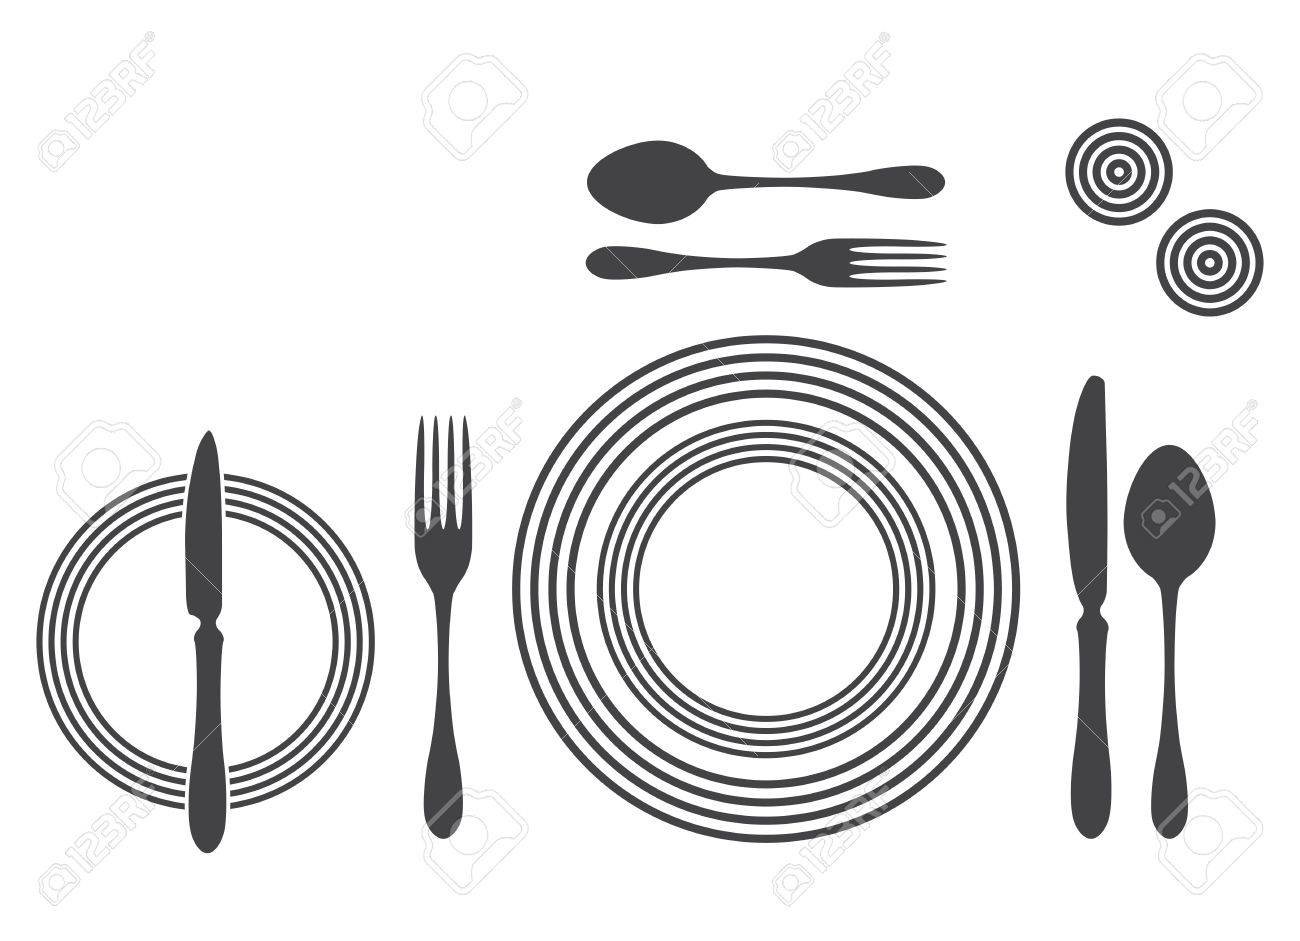 Etiquette Proper Table Setting Stock Vector - 17302514  sc 1 st  123RF.com & Etiquette Proper Table Setting Royalty Free Cliparts Vectors And ...